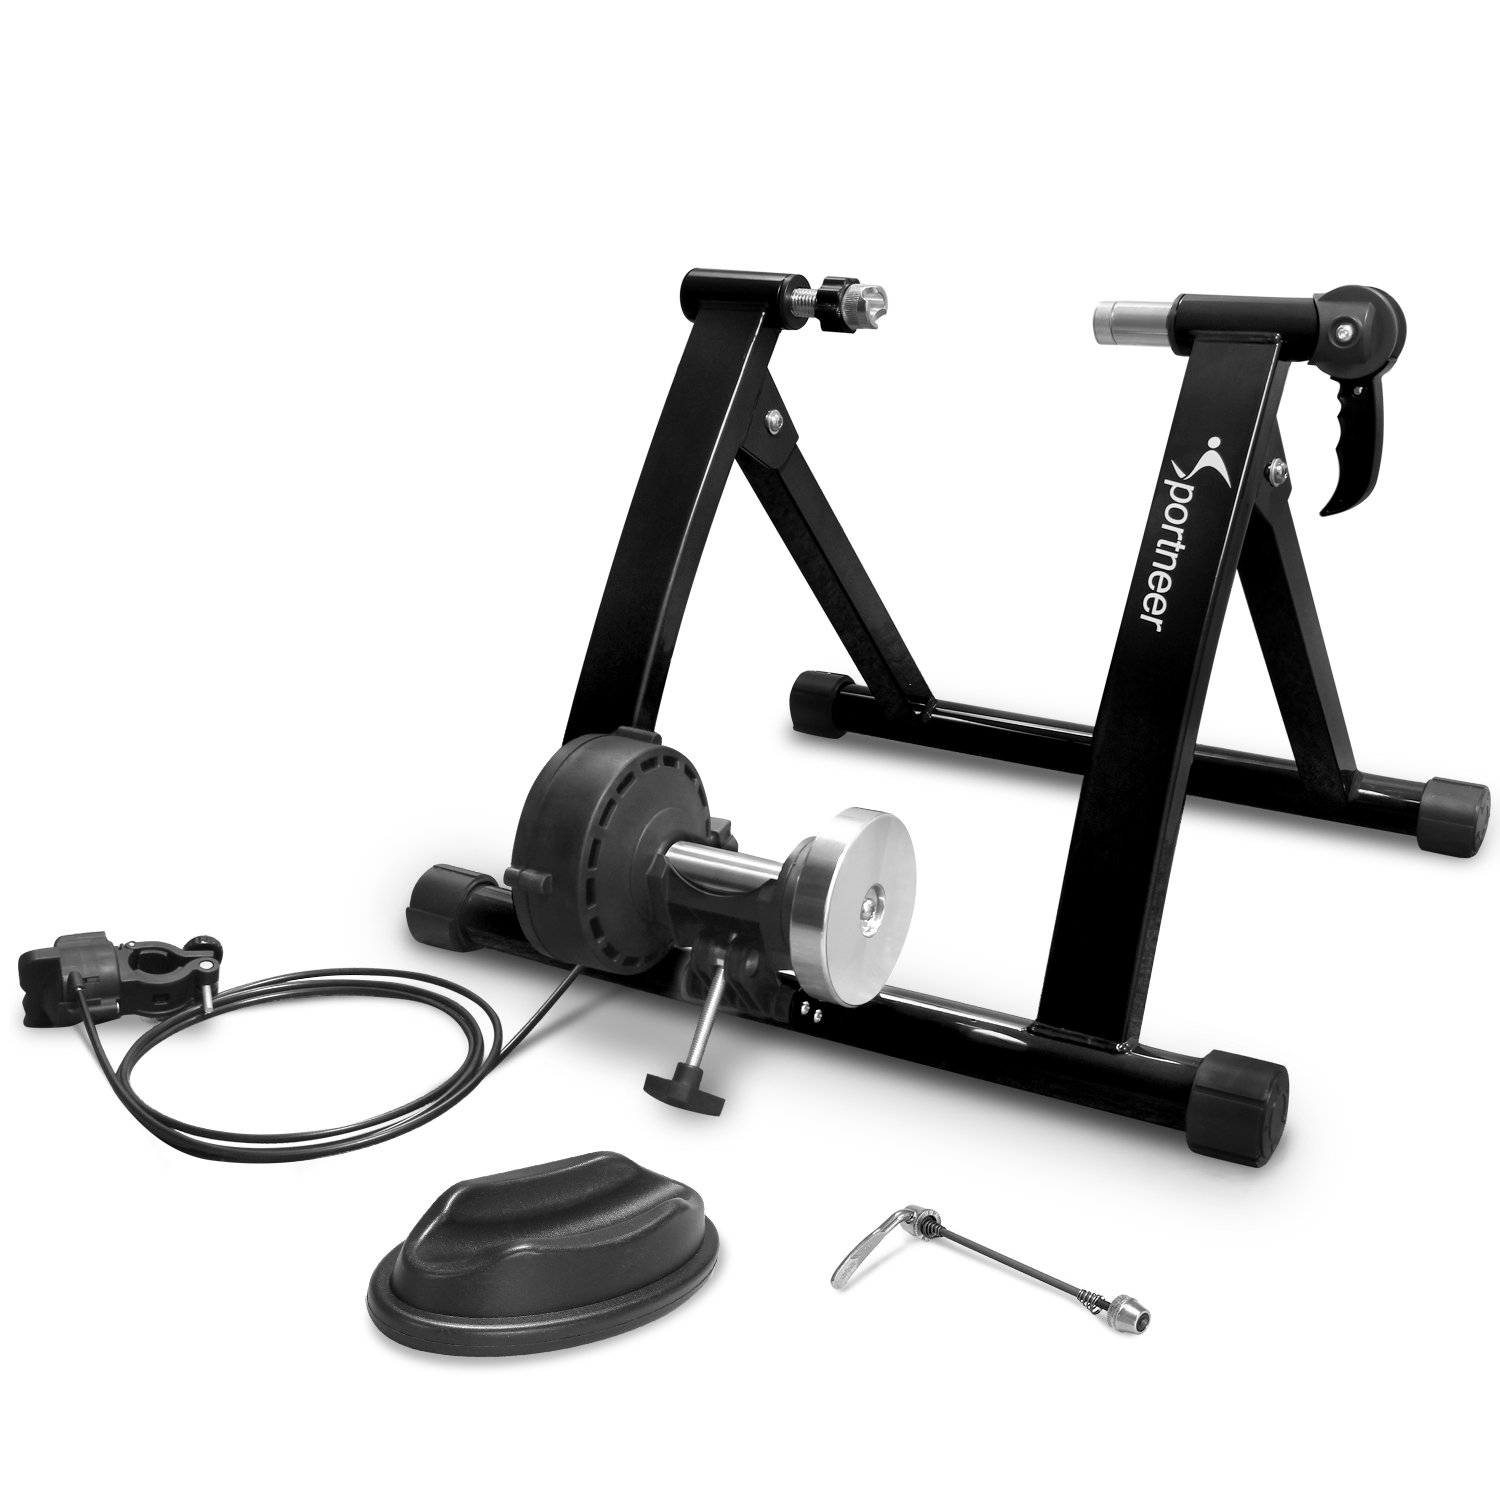 Sportneer Bike Trainer Stand Steel Bicycle Exercise Magnetic Stand with Noise Reduction Wheel, Black by Sportneer (Image #9)